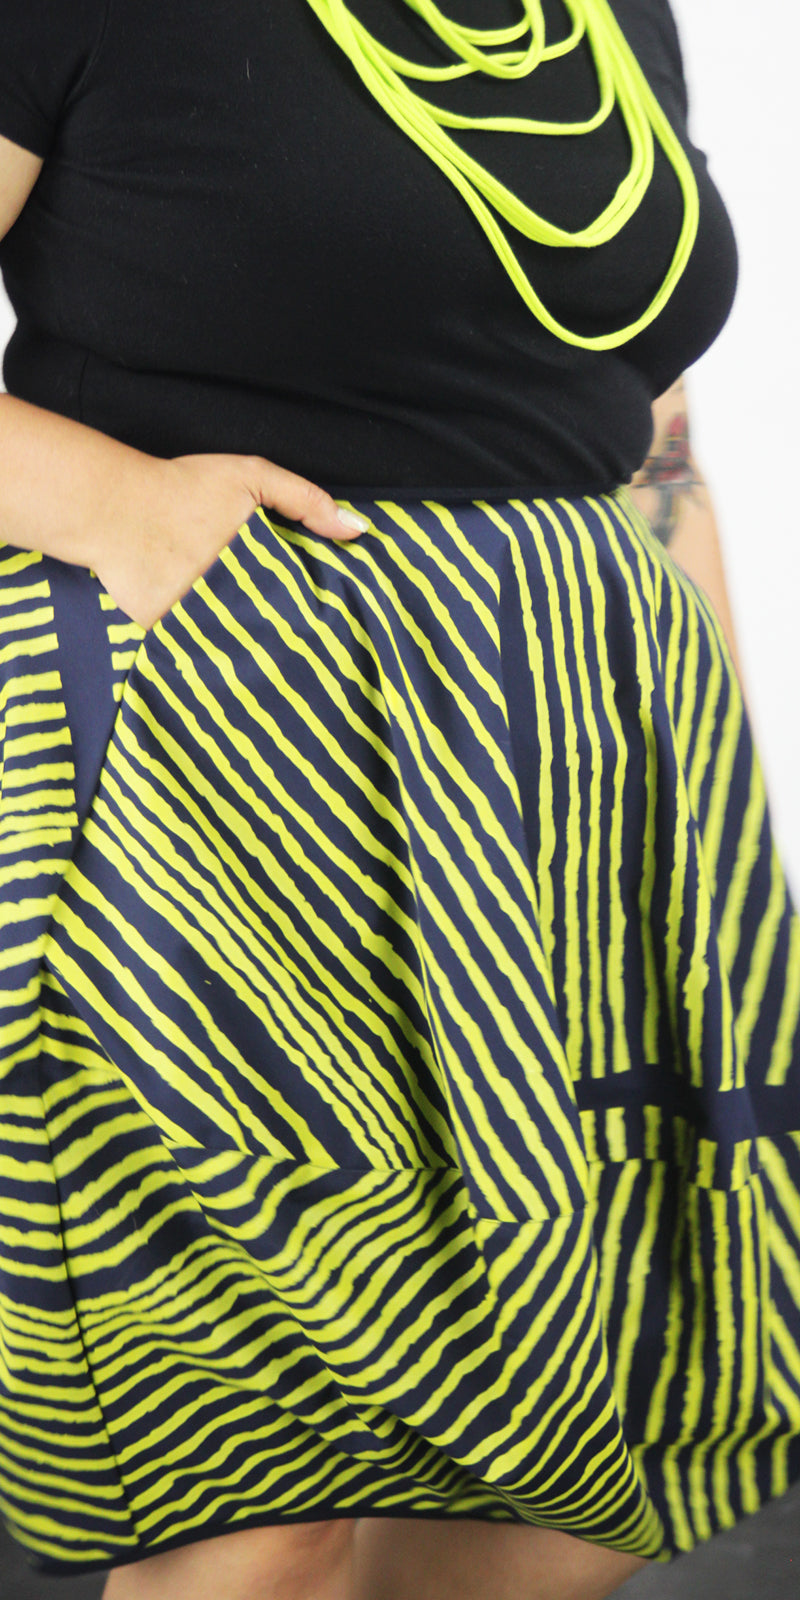 Navy bubble skirt with yellow stripes, one pocket and side zip